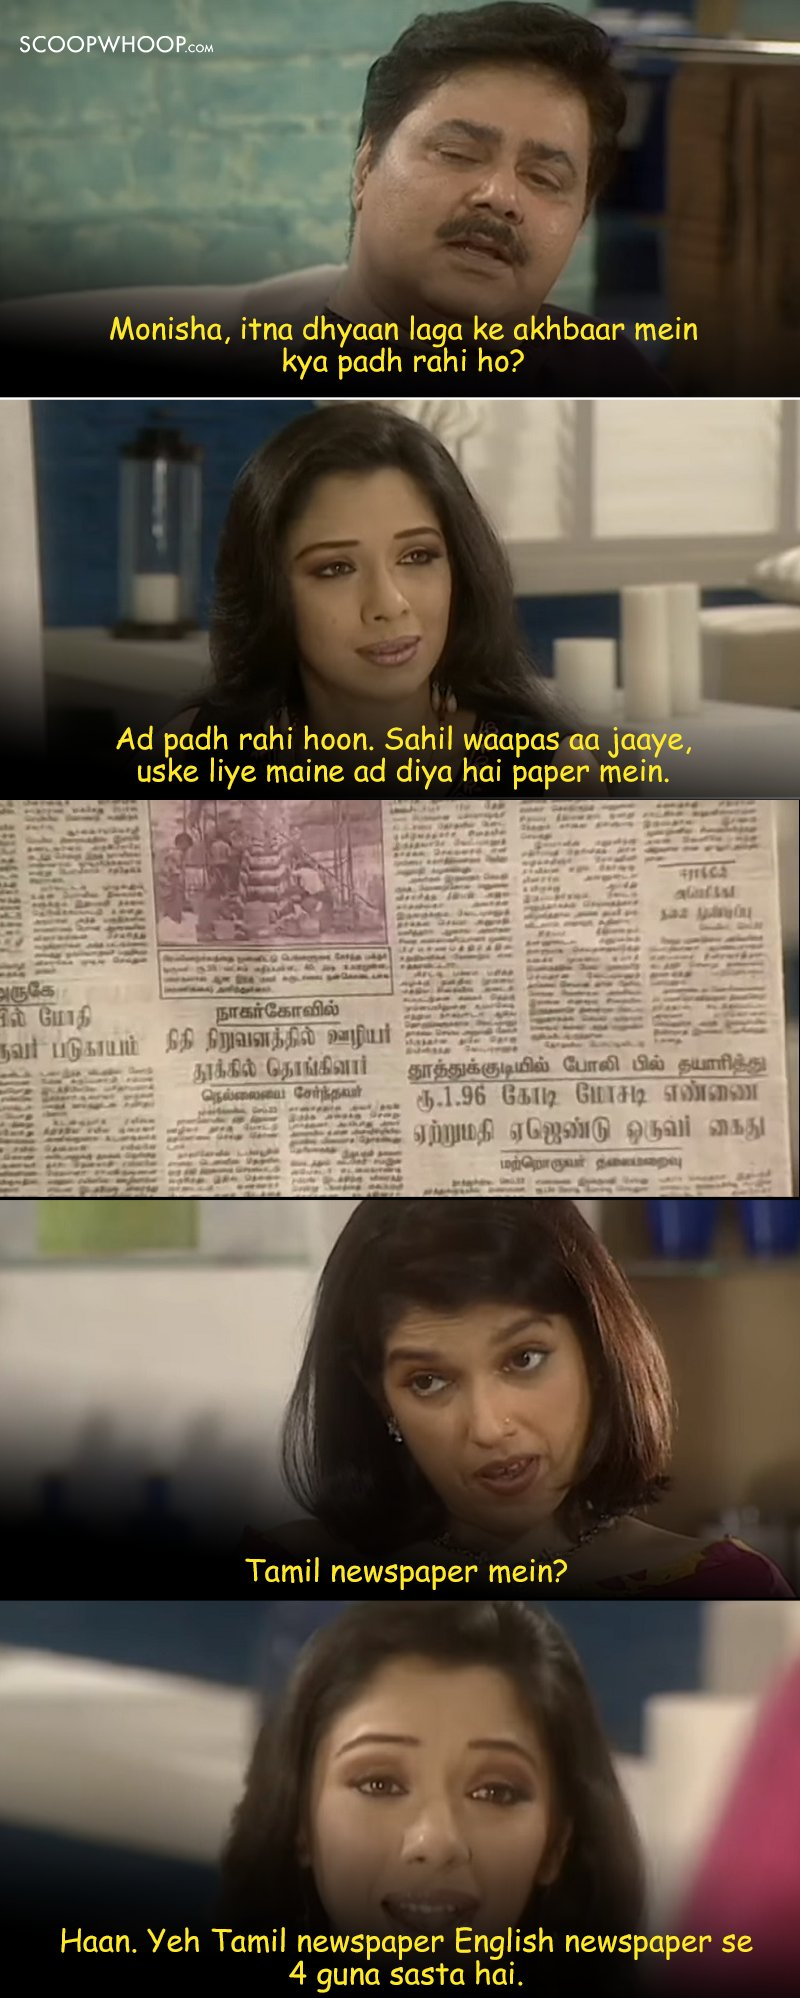 16 Hilarious 'Middle Class' Moments By Monisha From Sarabhai